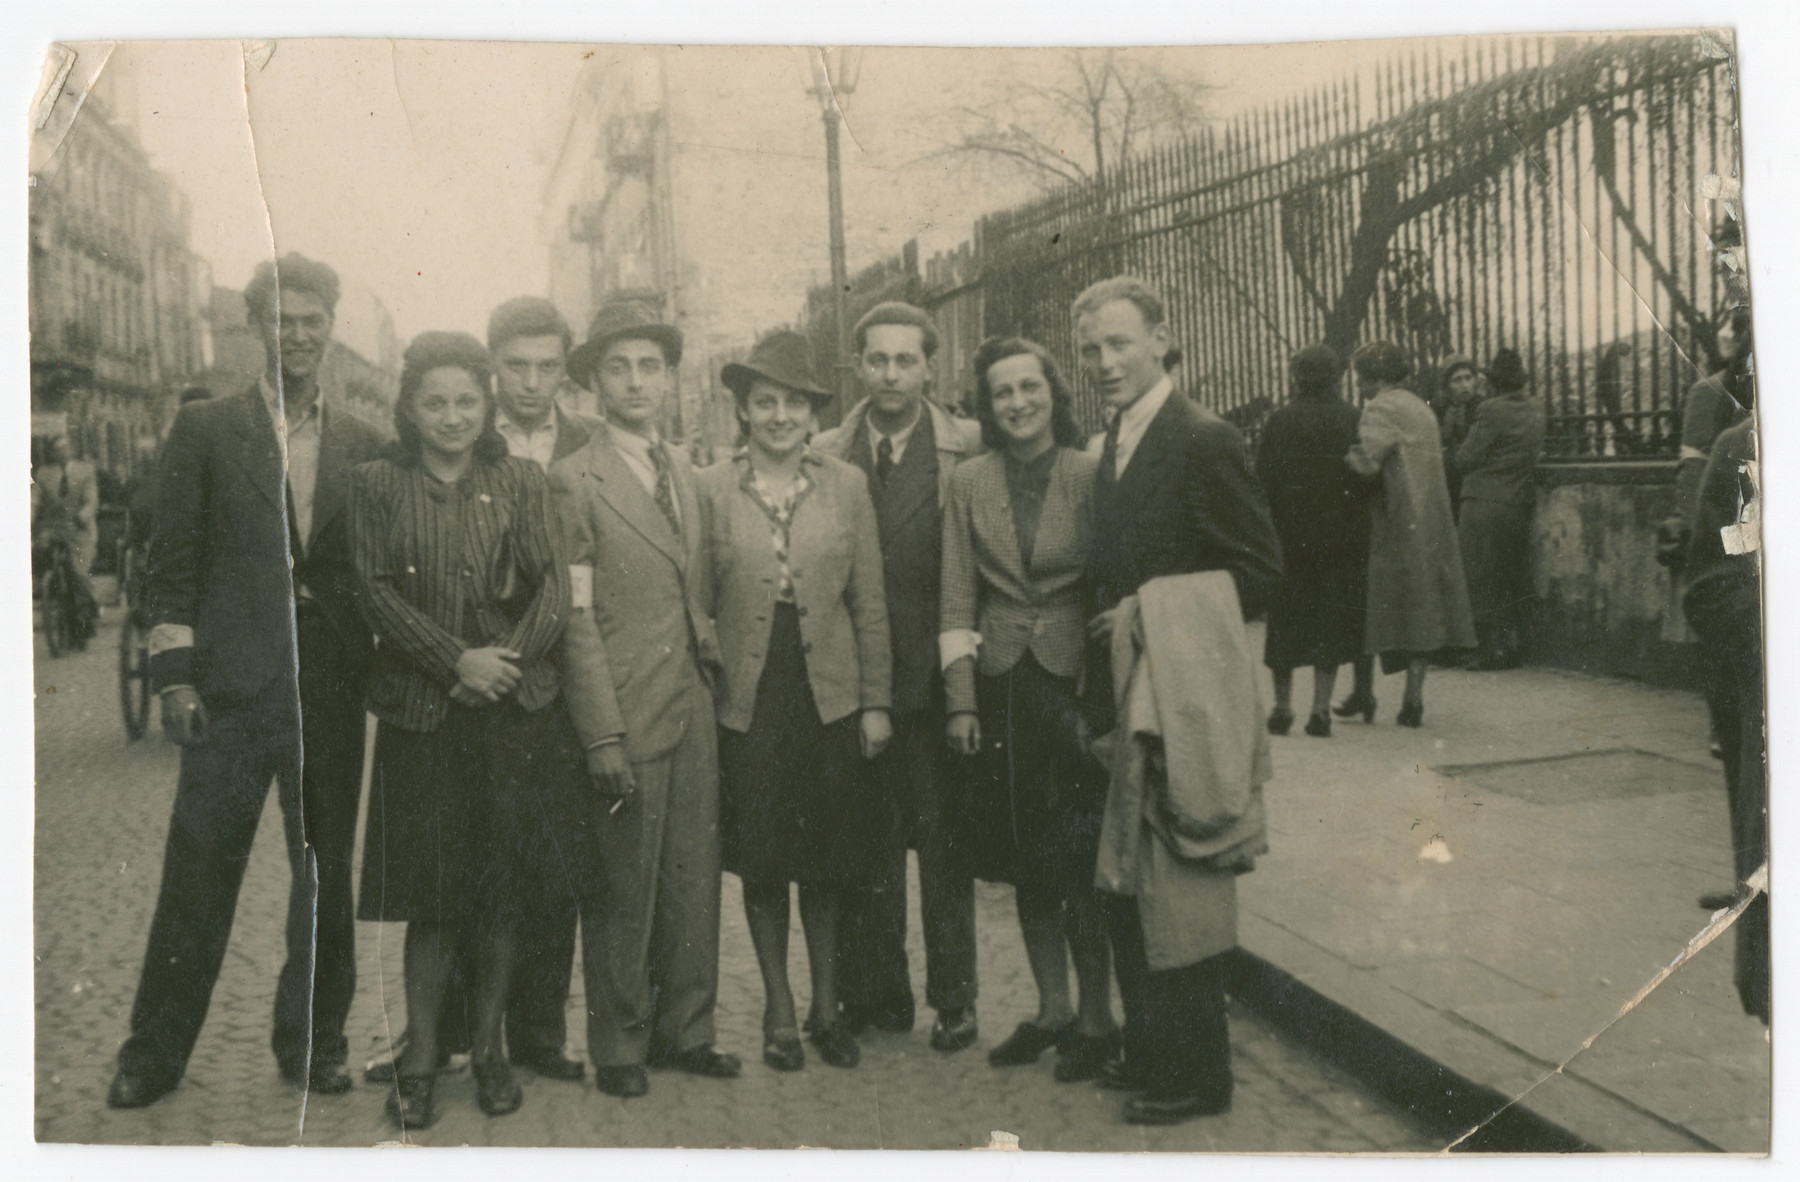 A group of Jewish young adults pose on a street in Warsaw.  Mary Wattenberg Berg) is standing second from the left.  Behind her to the right is her boyfriend Romek Kowalski.